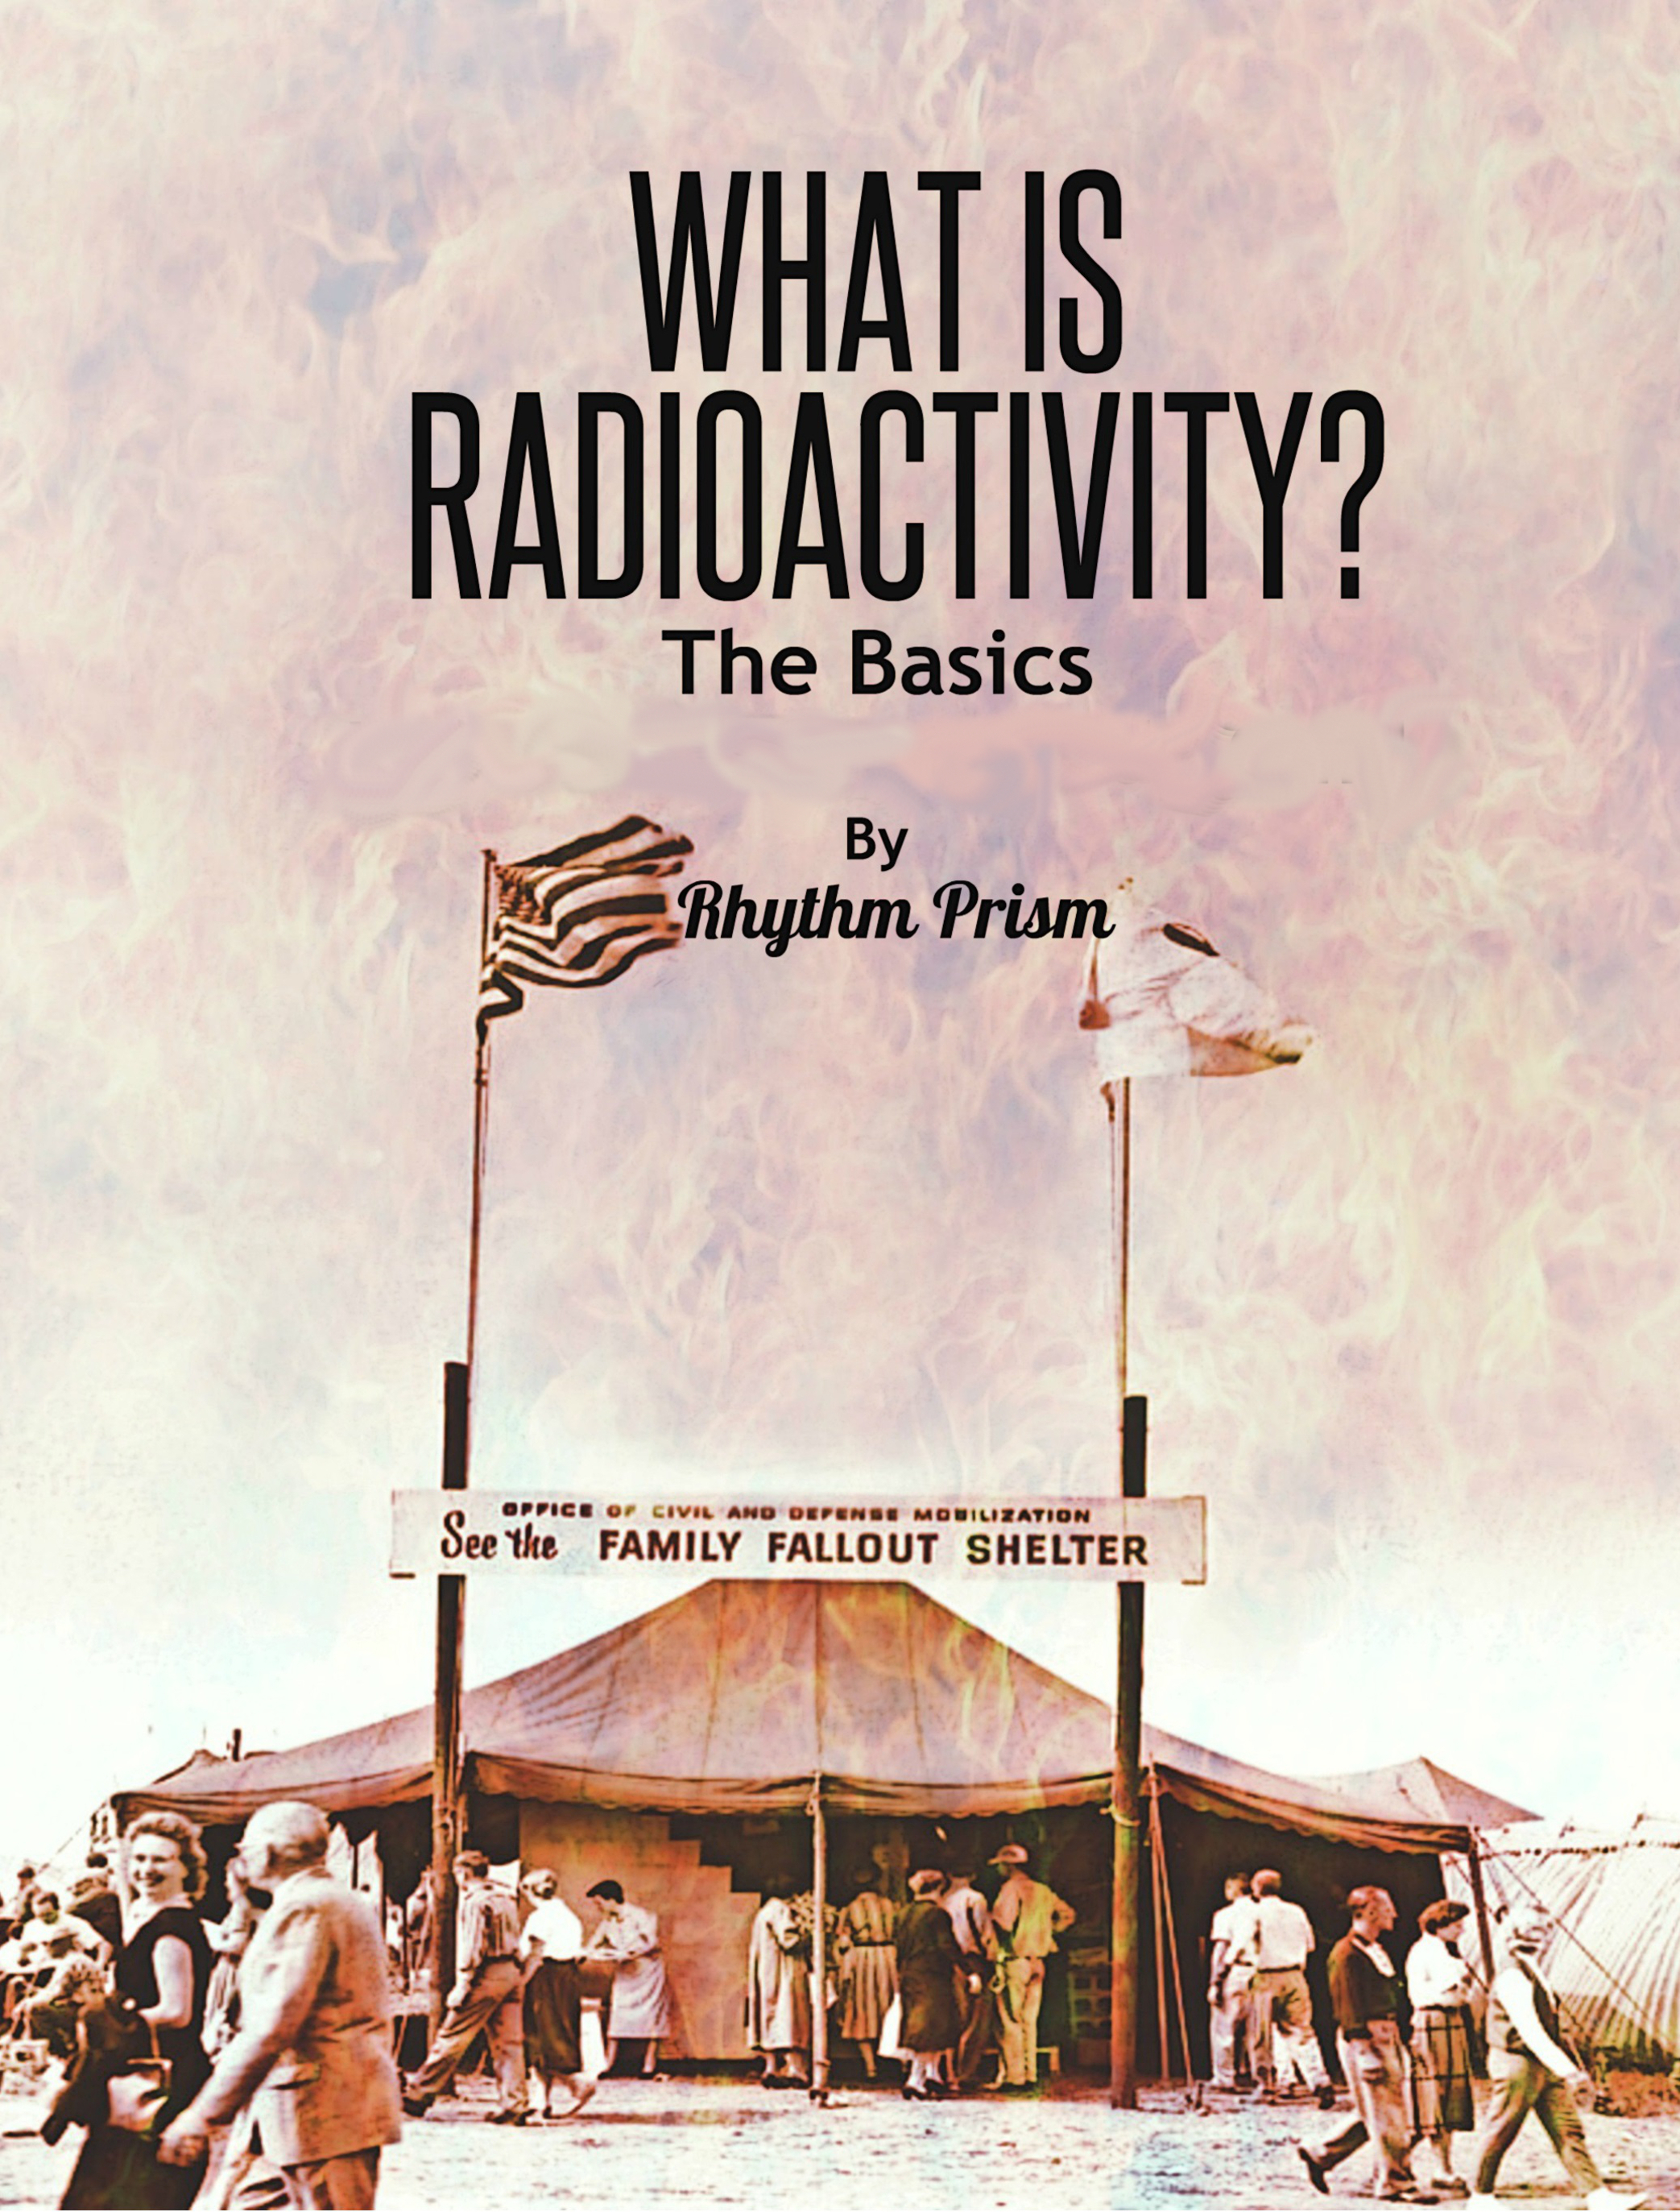 What Is Radioactivity? The Basics  by  Rhythm Prism